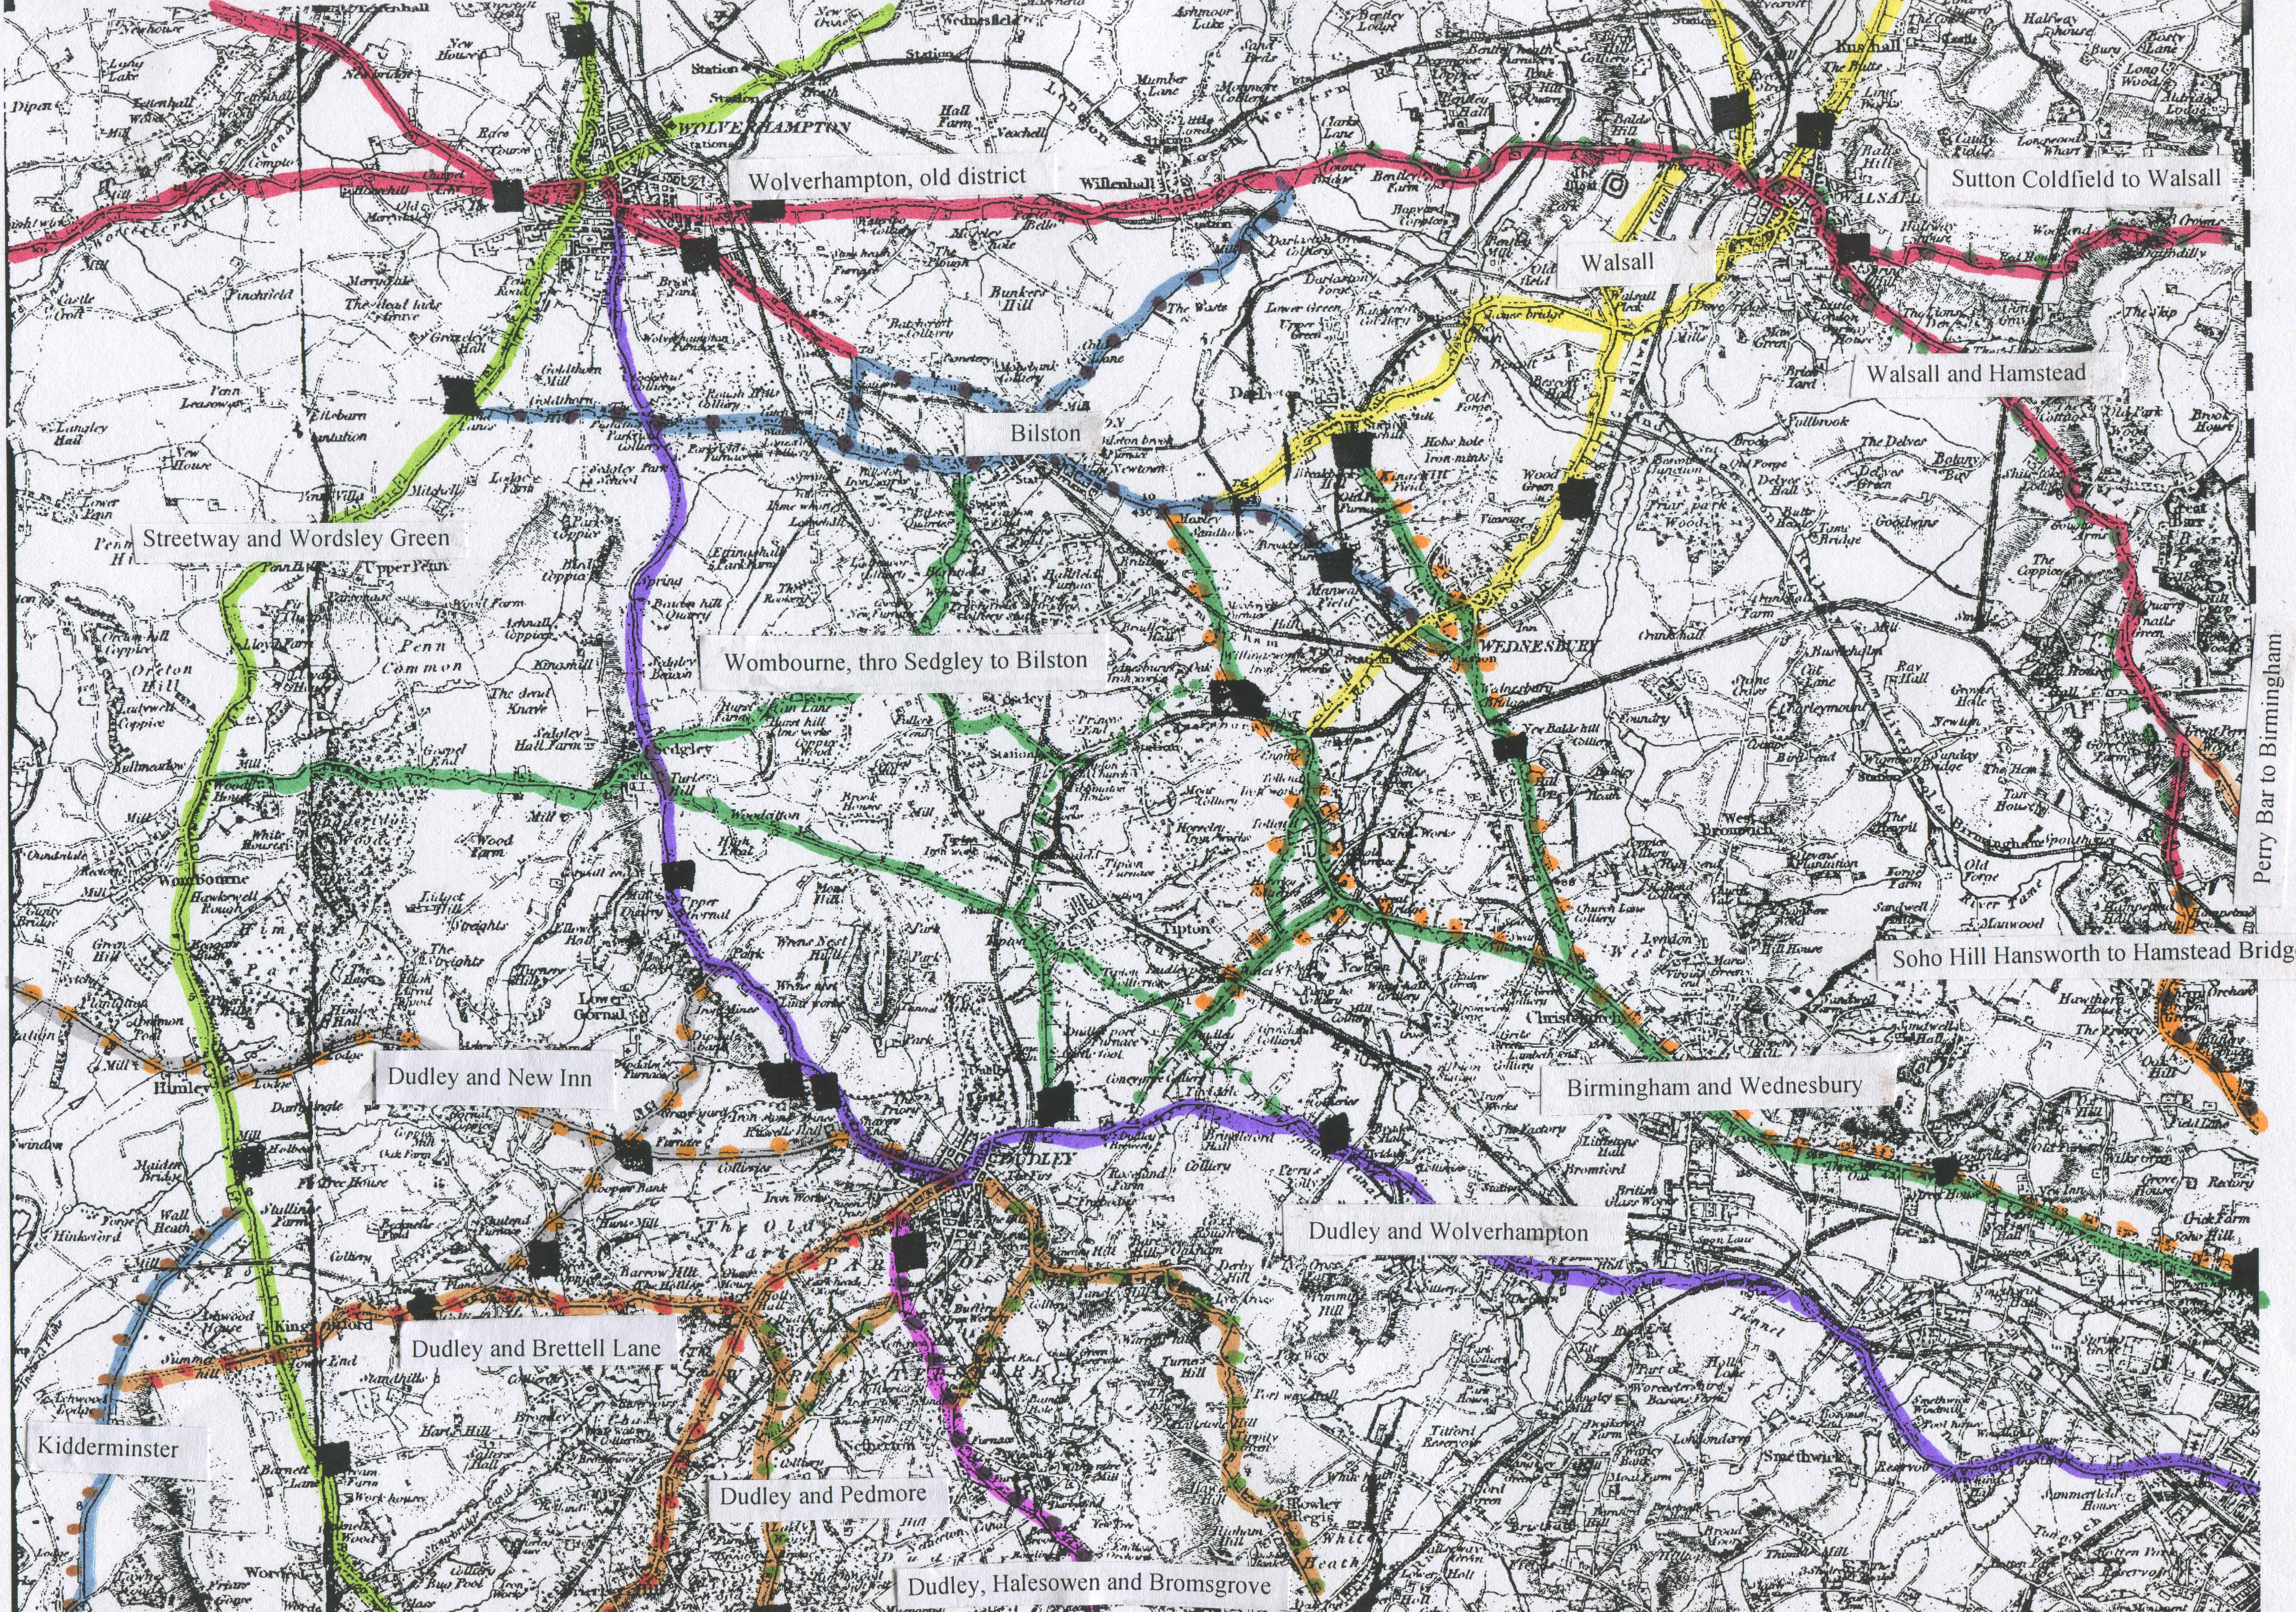 Turnpike roads in England and tollhouses – Map Uk Roads